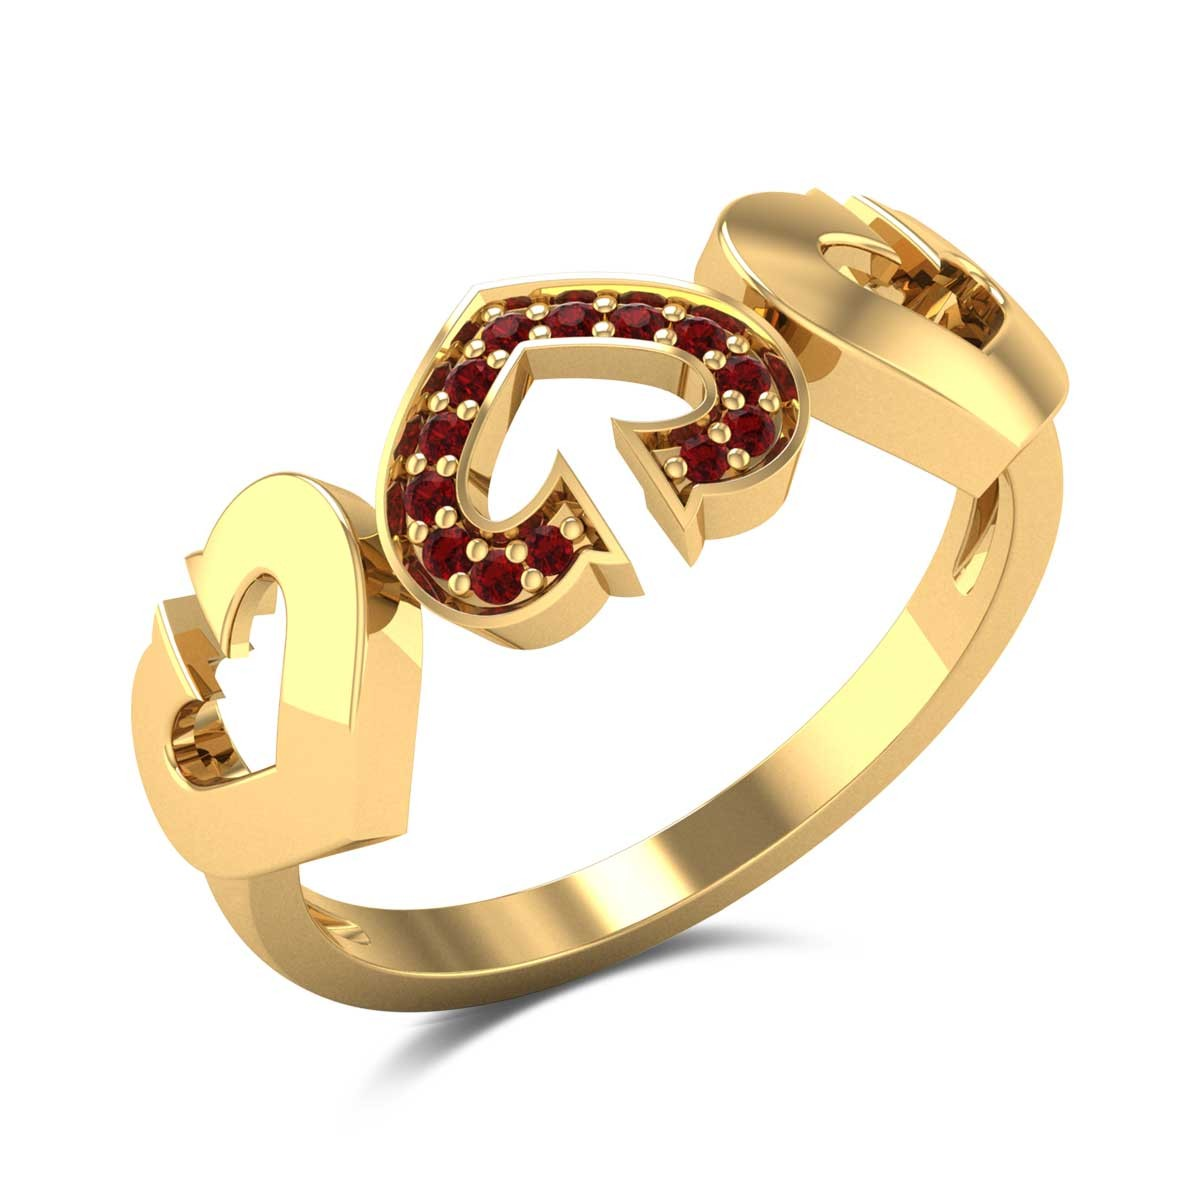 You and Me Ruby Heart Ring